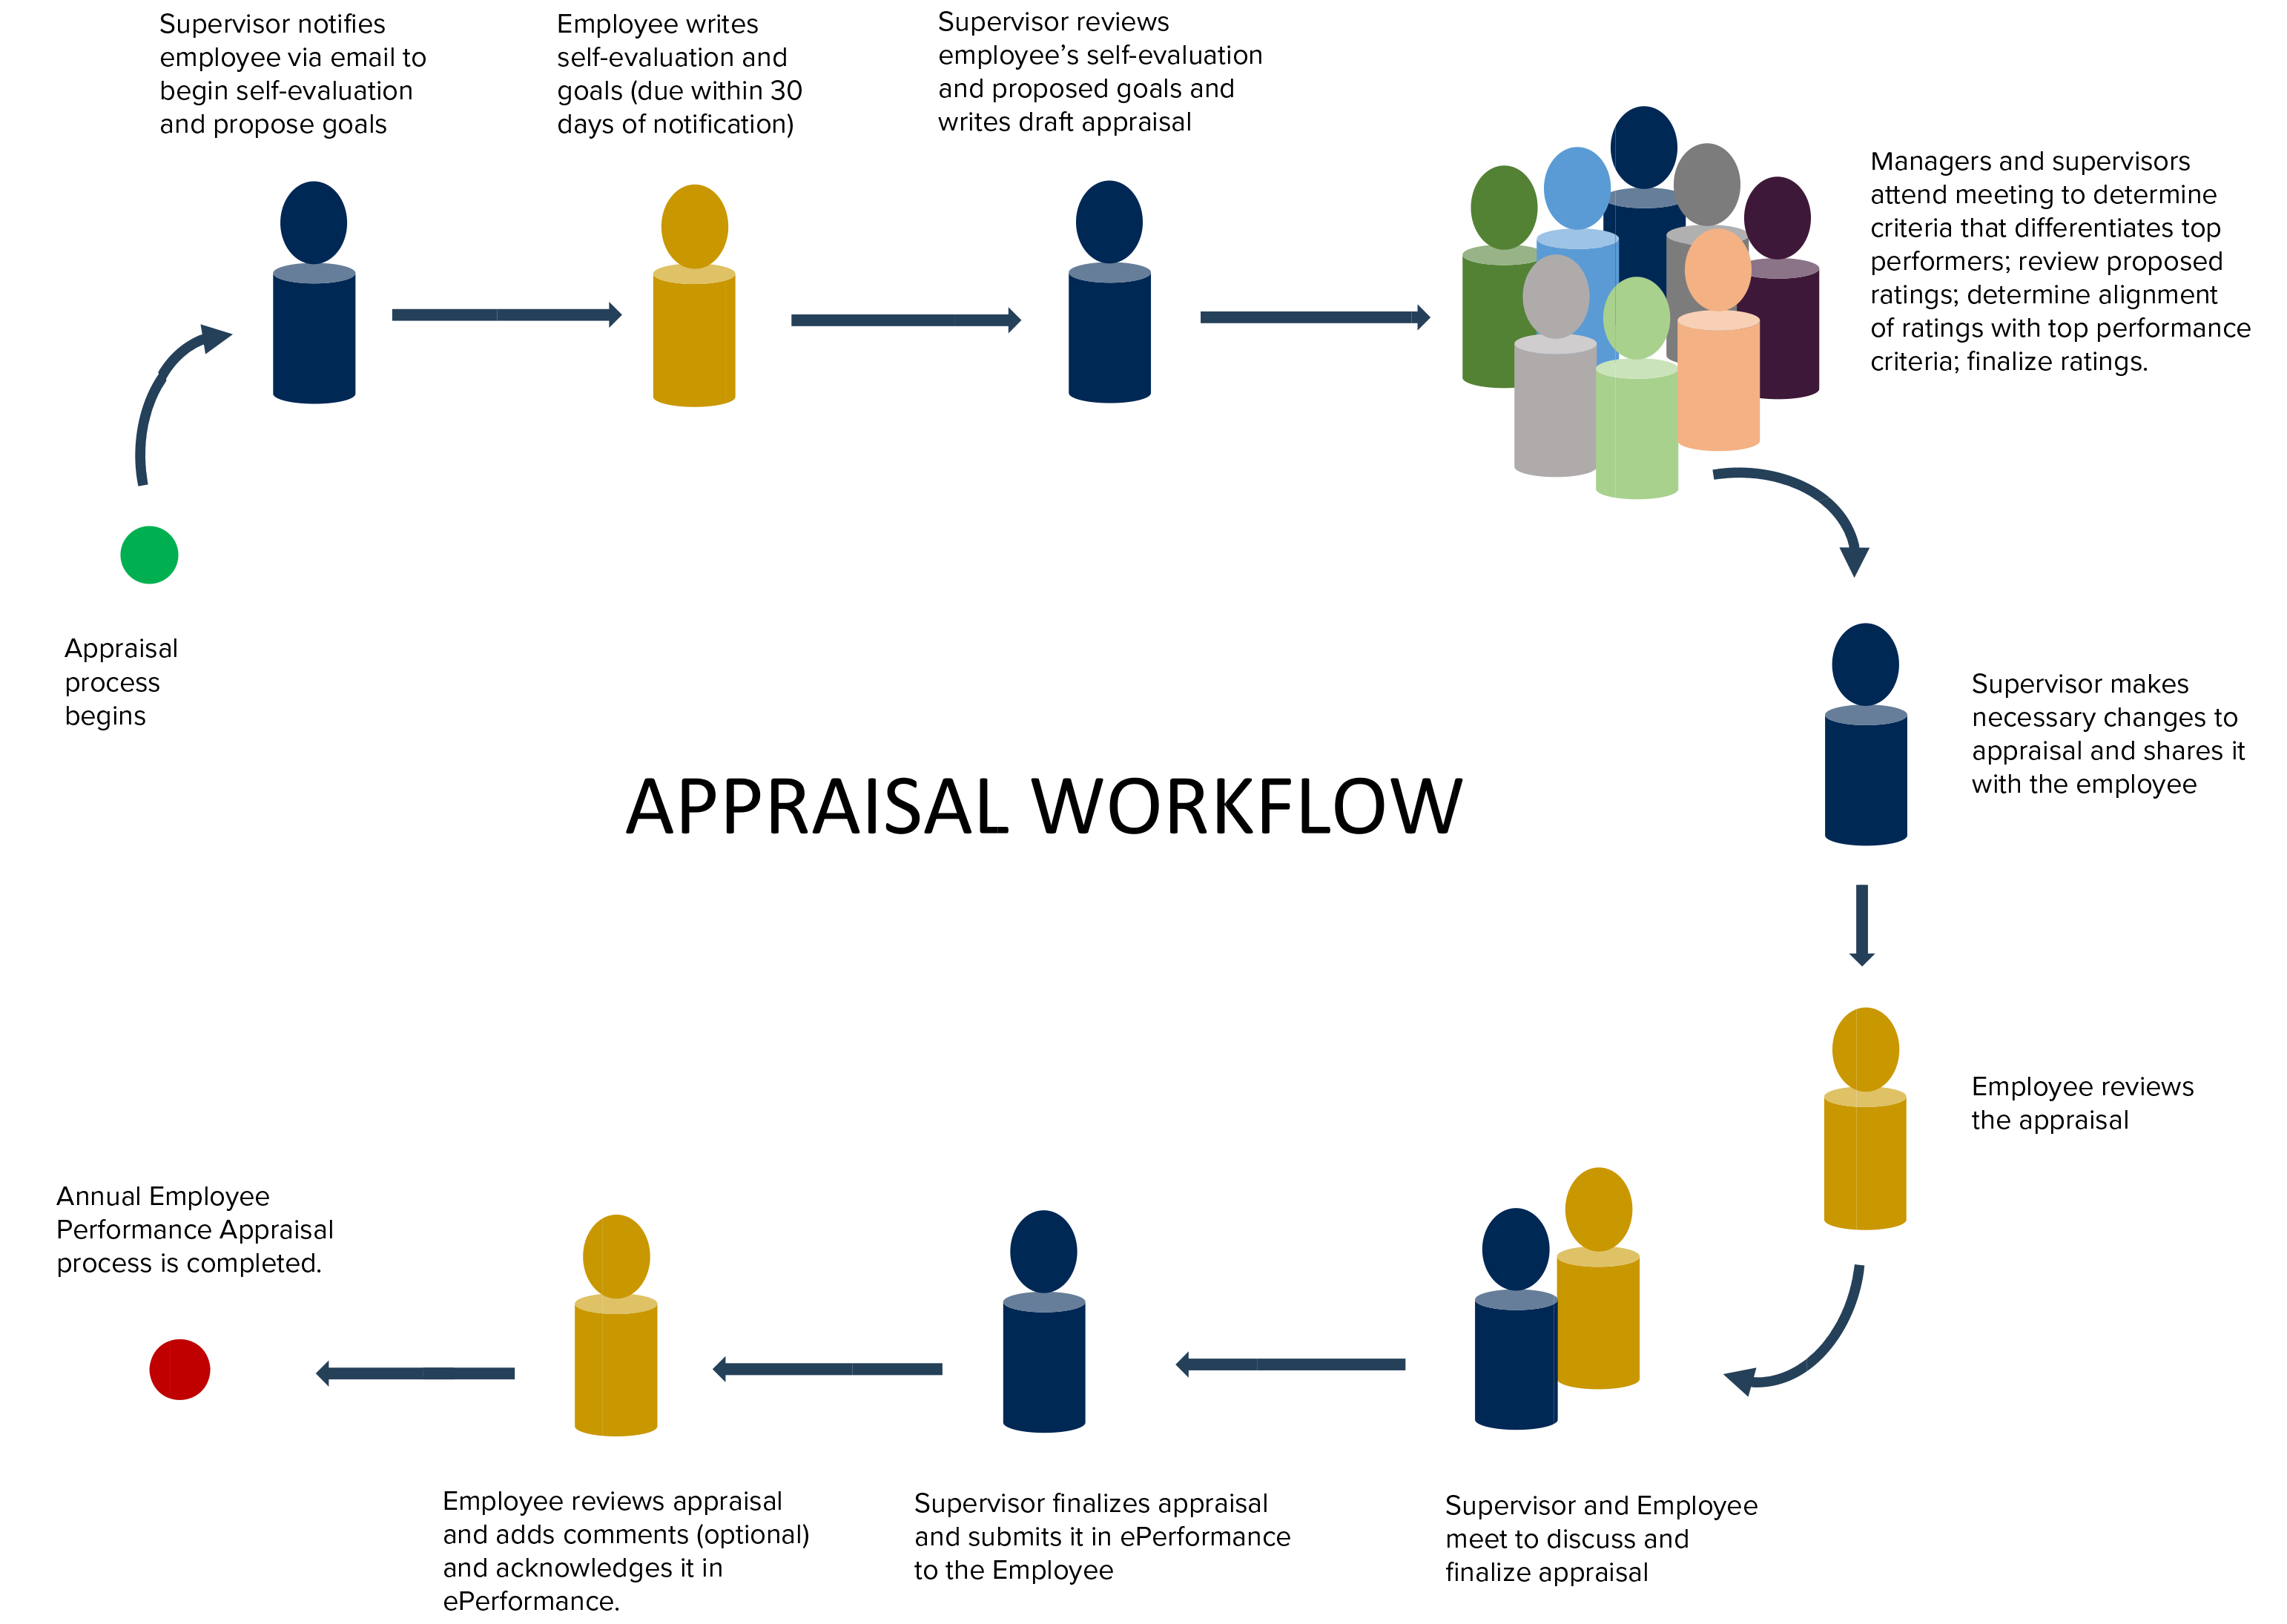 workflow diagram of the appraisal process at uc davis